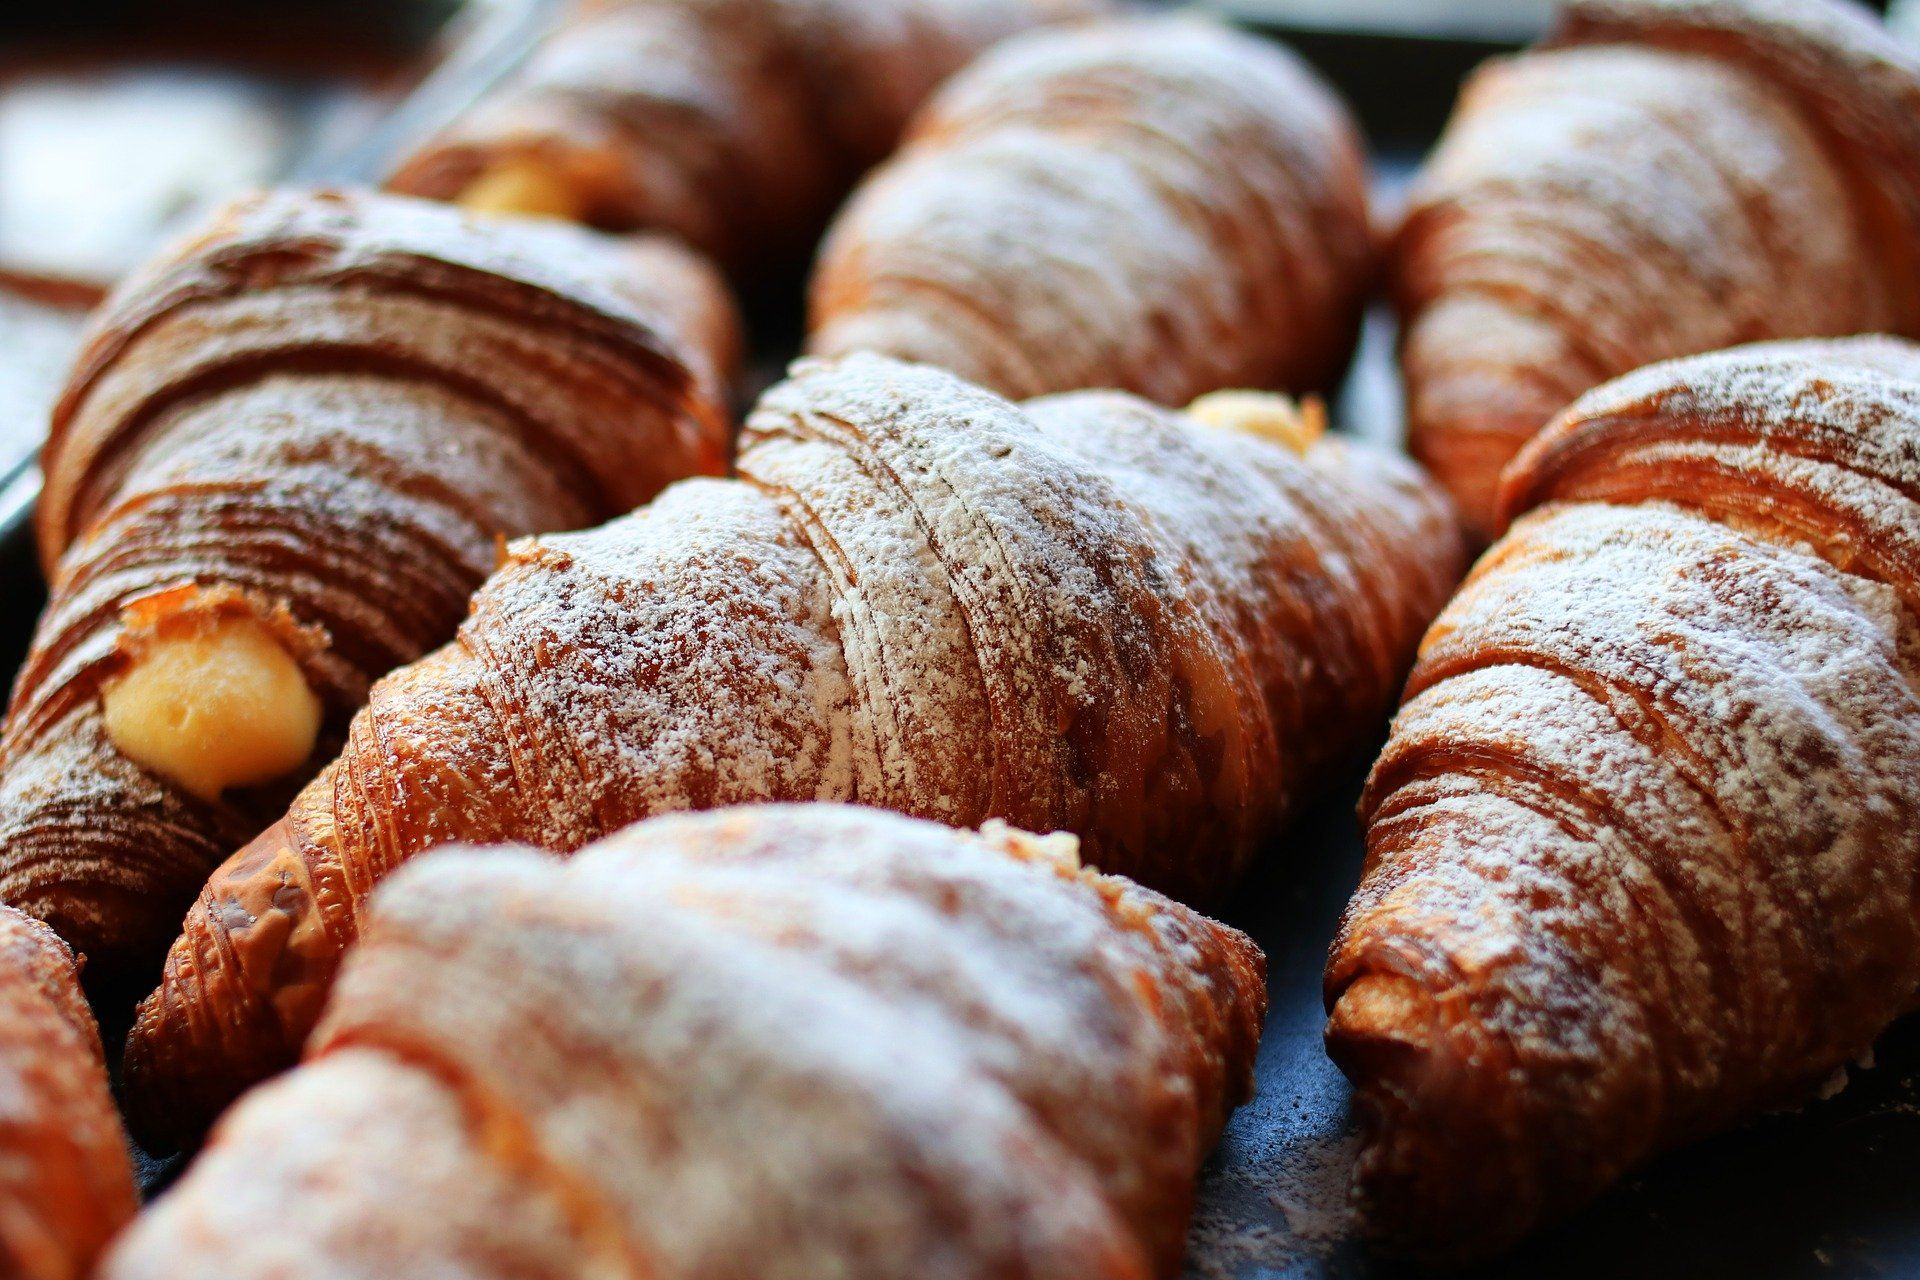 Where To Find The Best Croissants In Bangkok